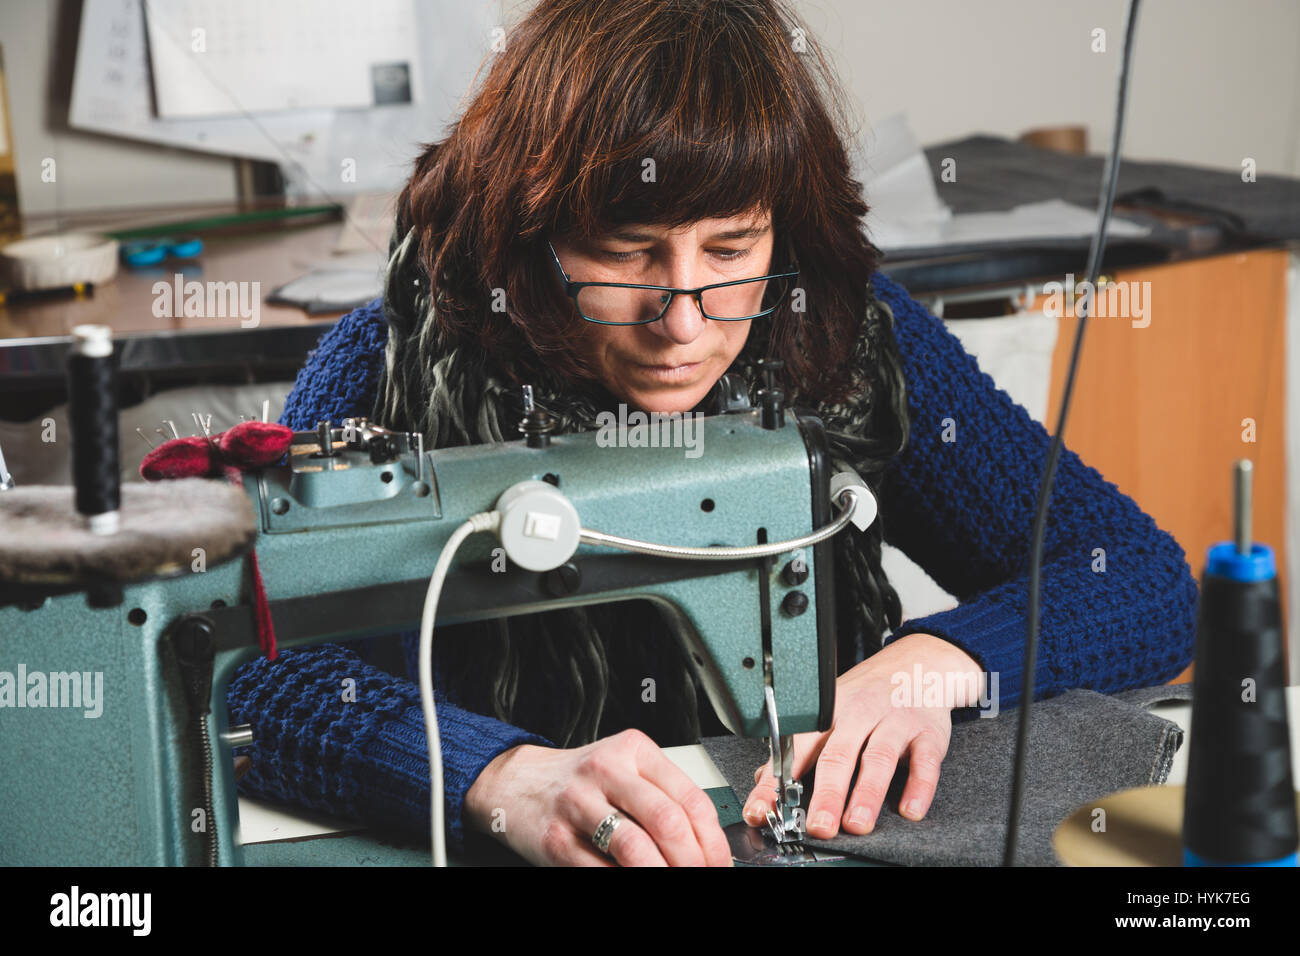 Seamstress sewing with a professional sewing machine - Stock Image